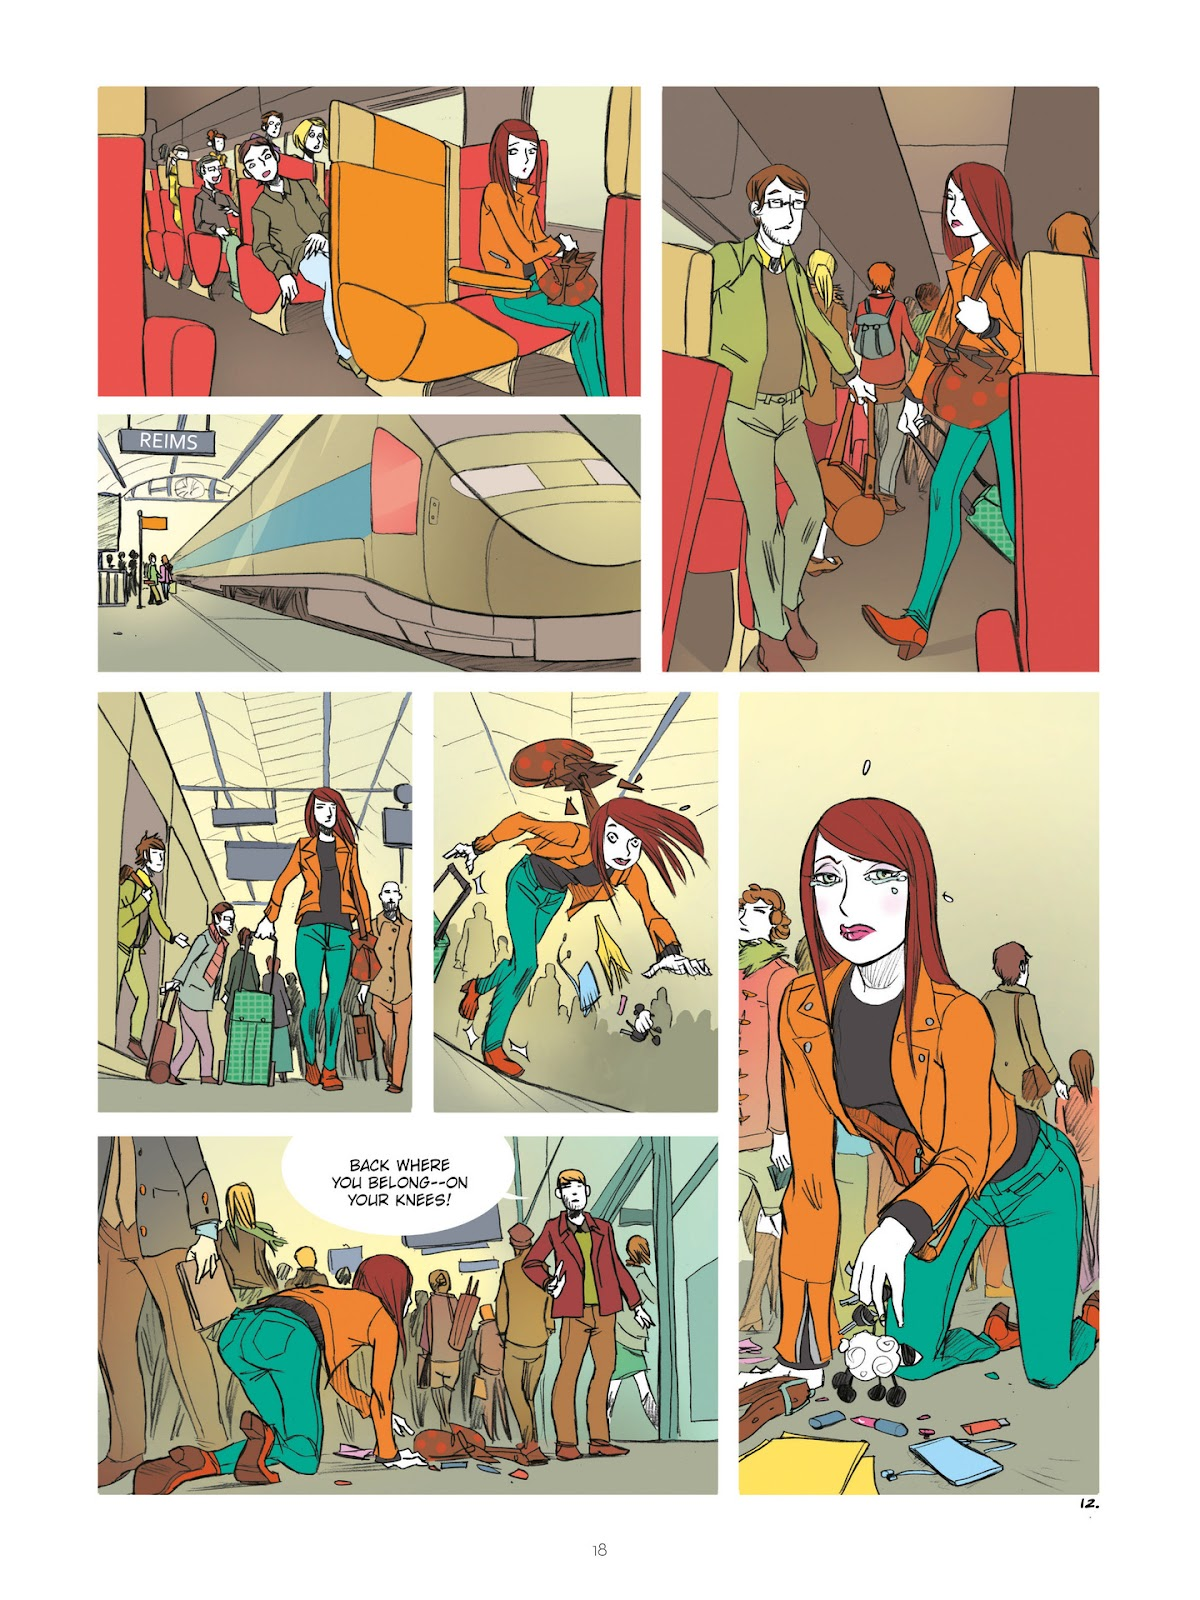 Read online Diary of A Femen comic -  Issue # TPB - 20